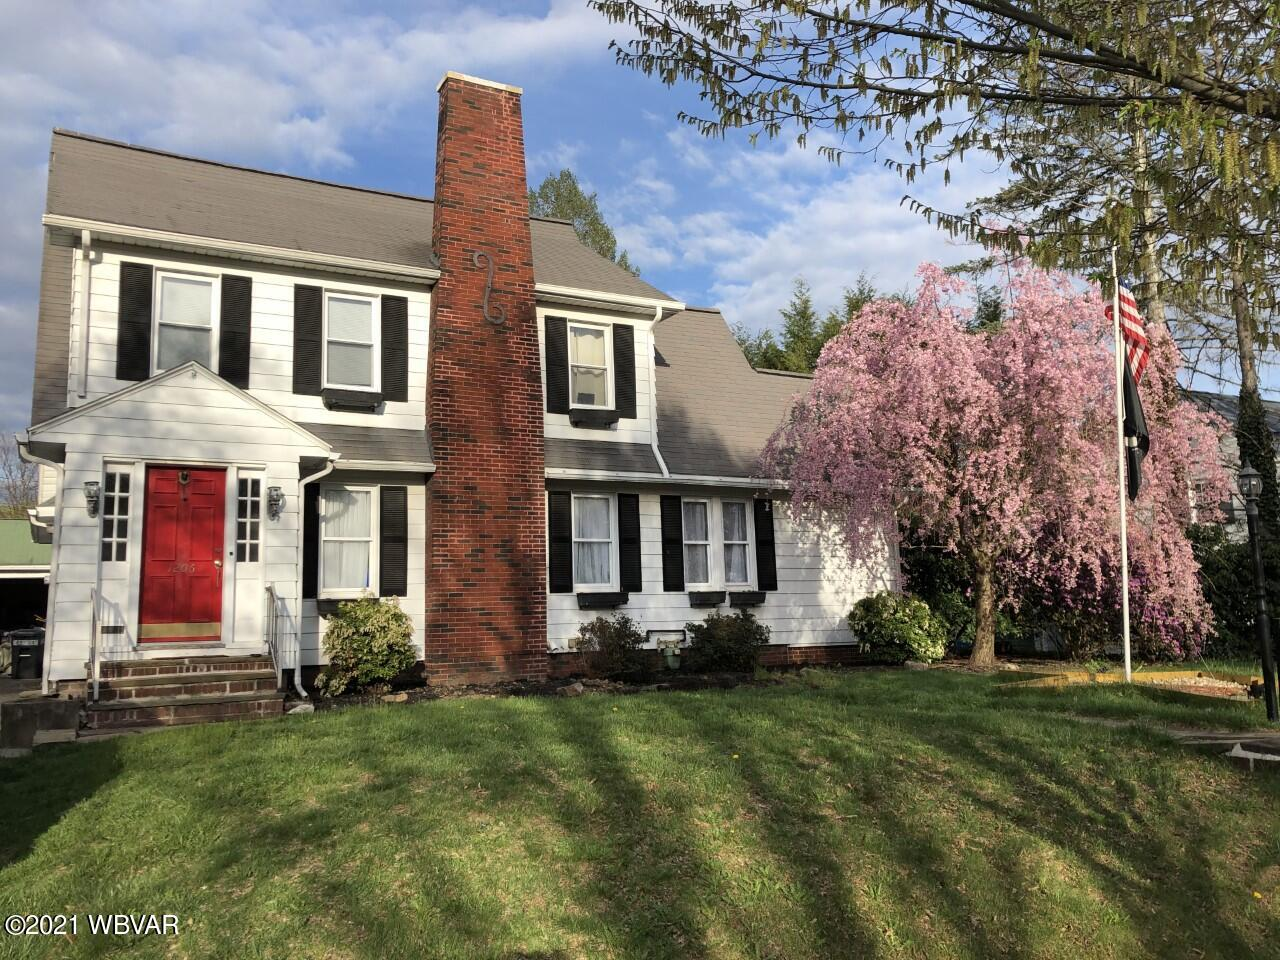 1206 FAXON PARKWAY, Williamsport, PA 17701, 3 Bedrooms Bedrooms, ,2 BathroomsBathrooms,Residential,For sale,FAXON,WB-92334